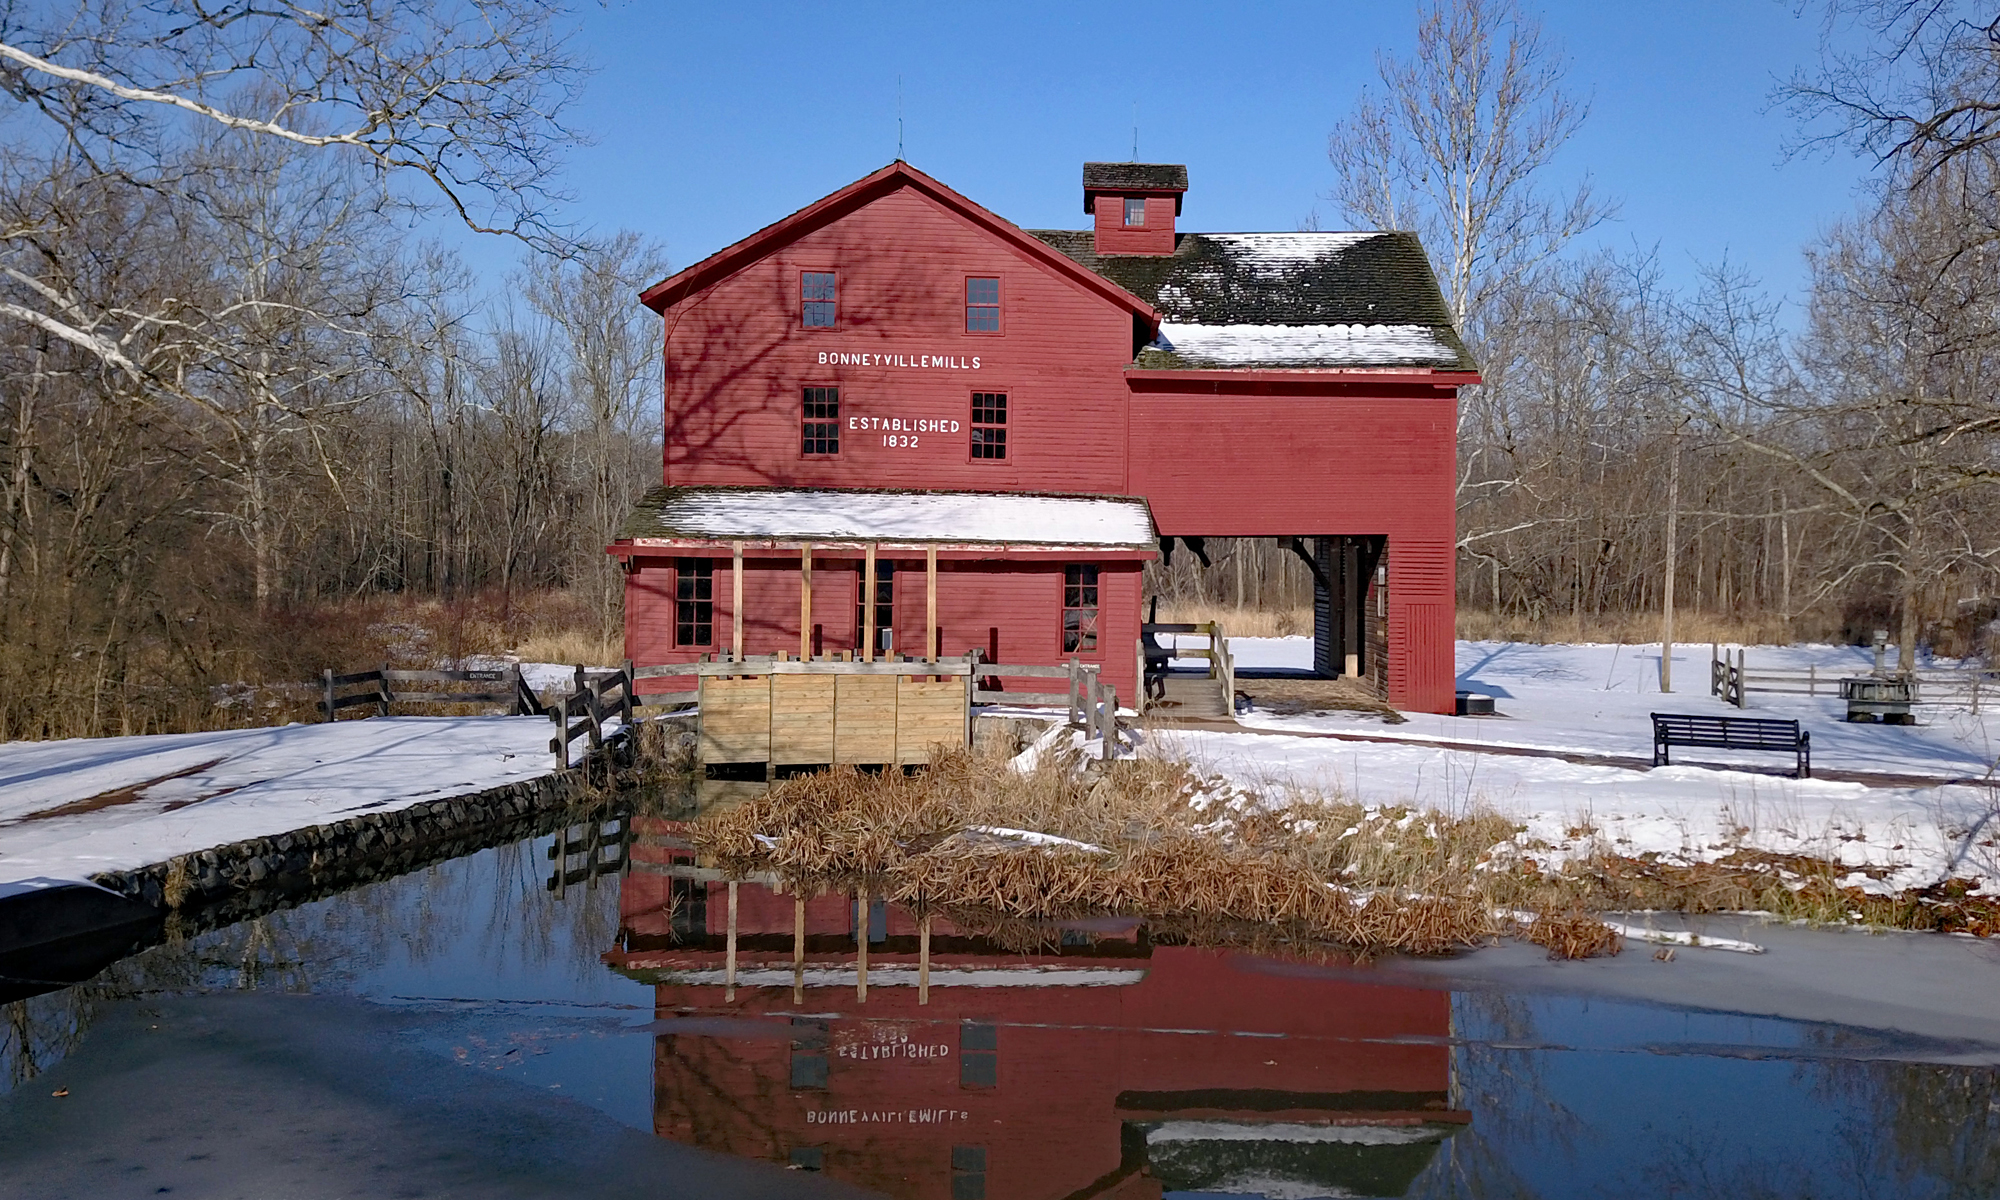 Bonneyville Mill